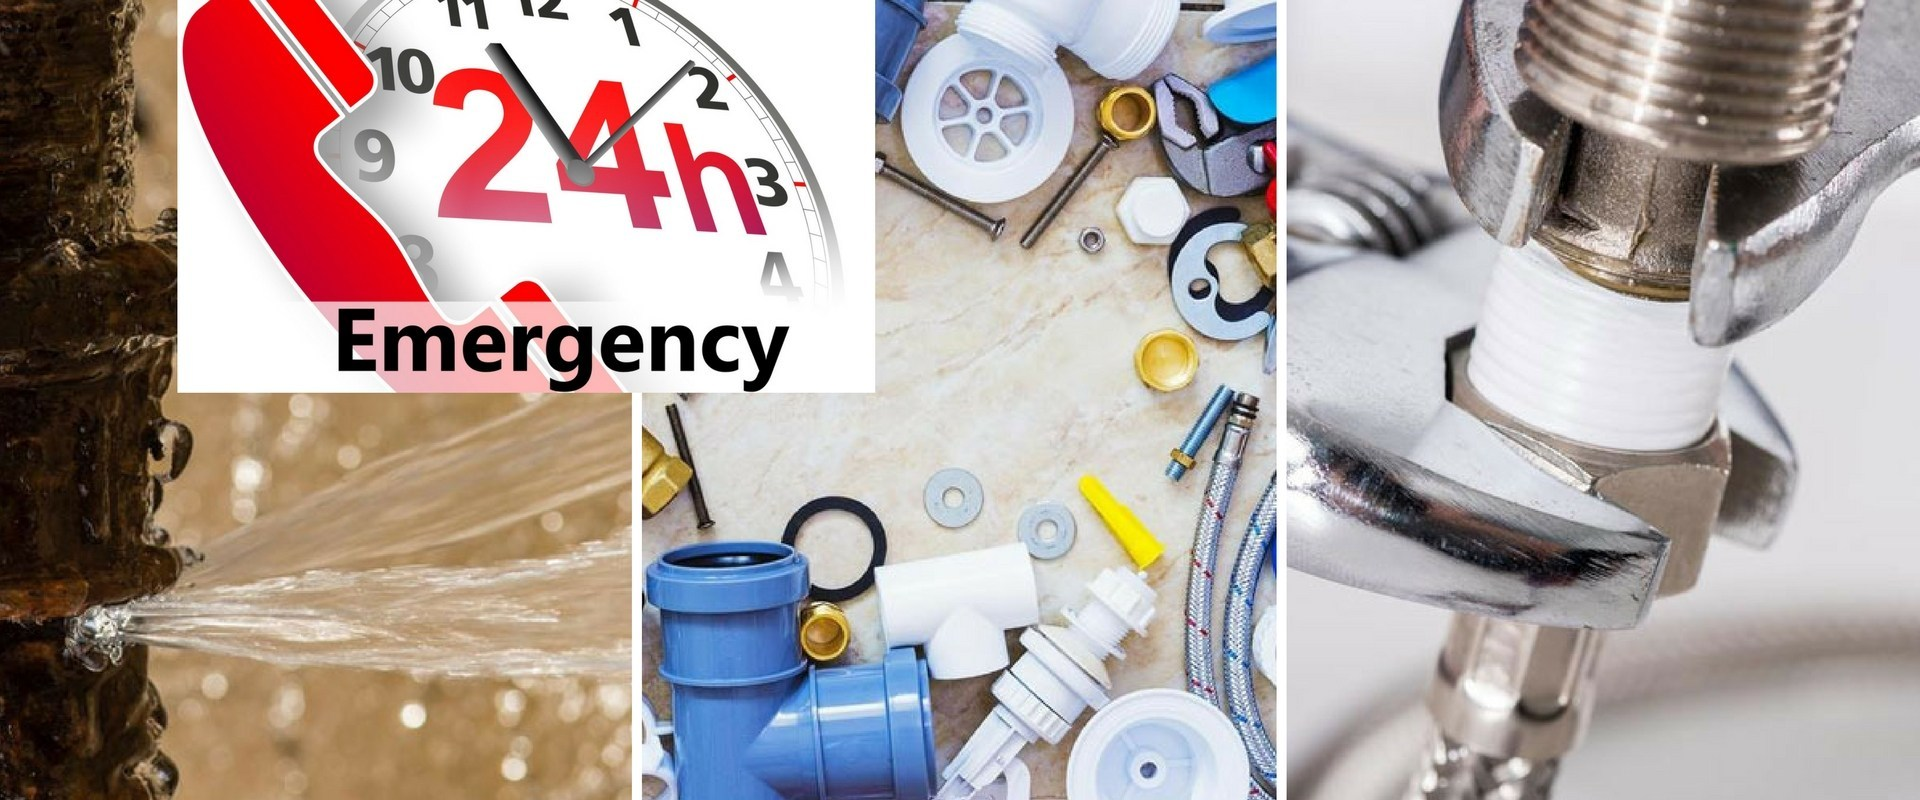 landsborough-emergency-plumbers